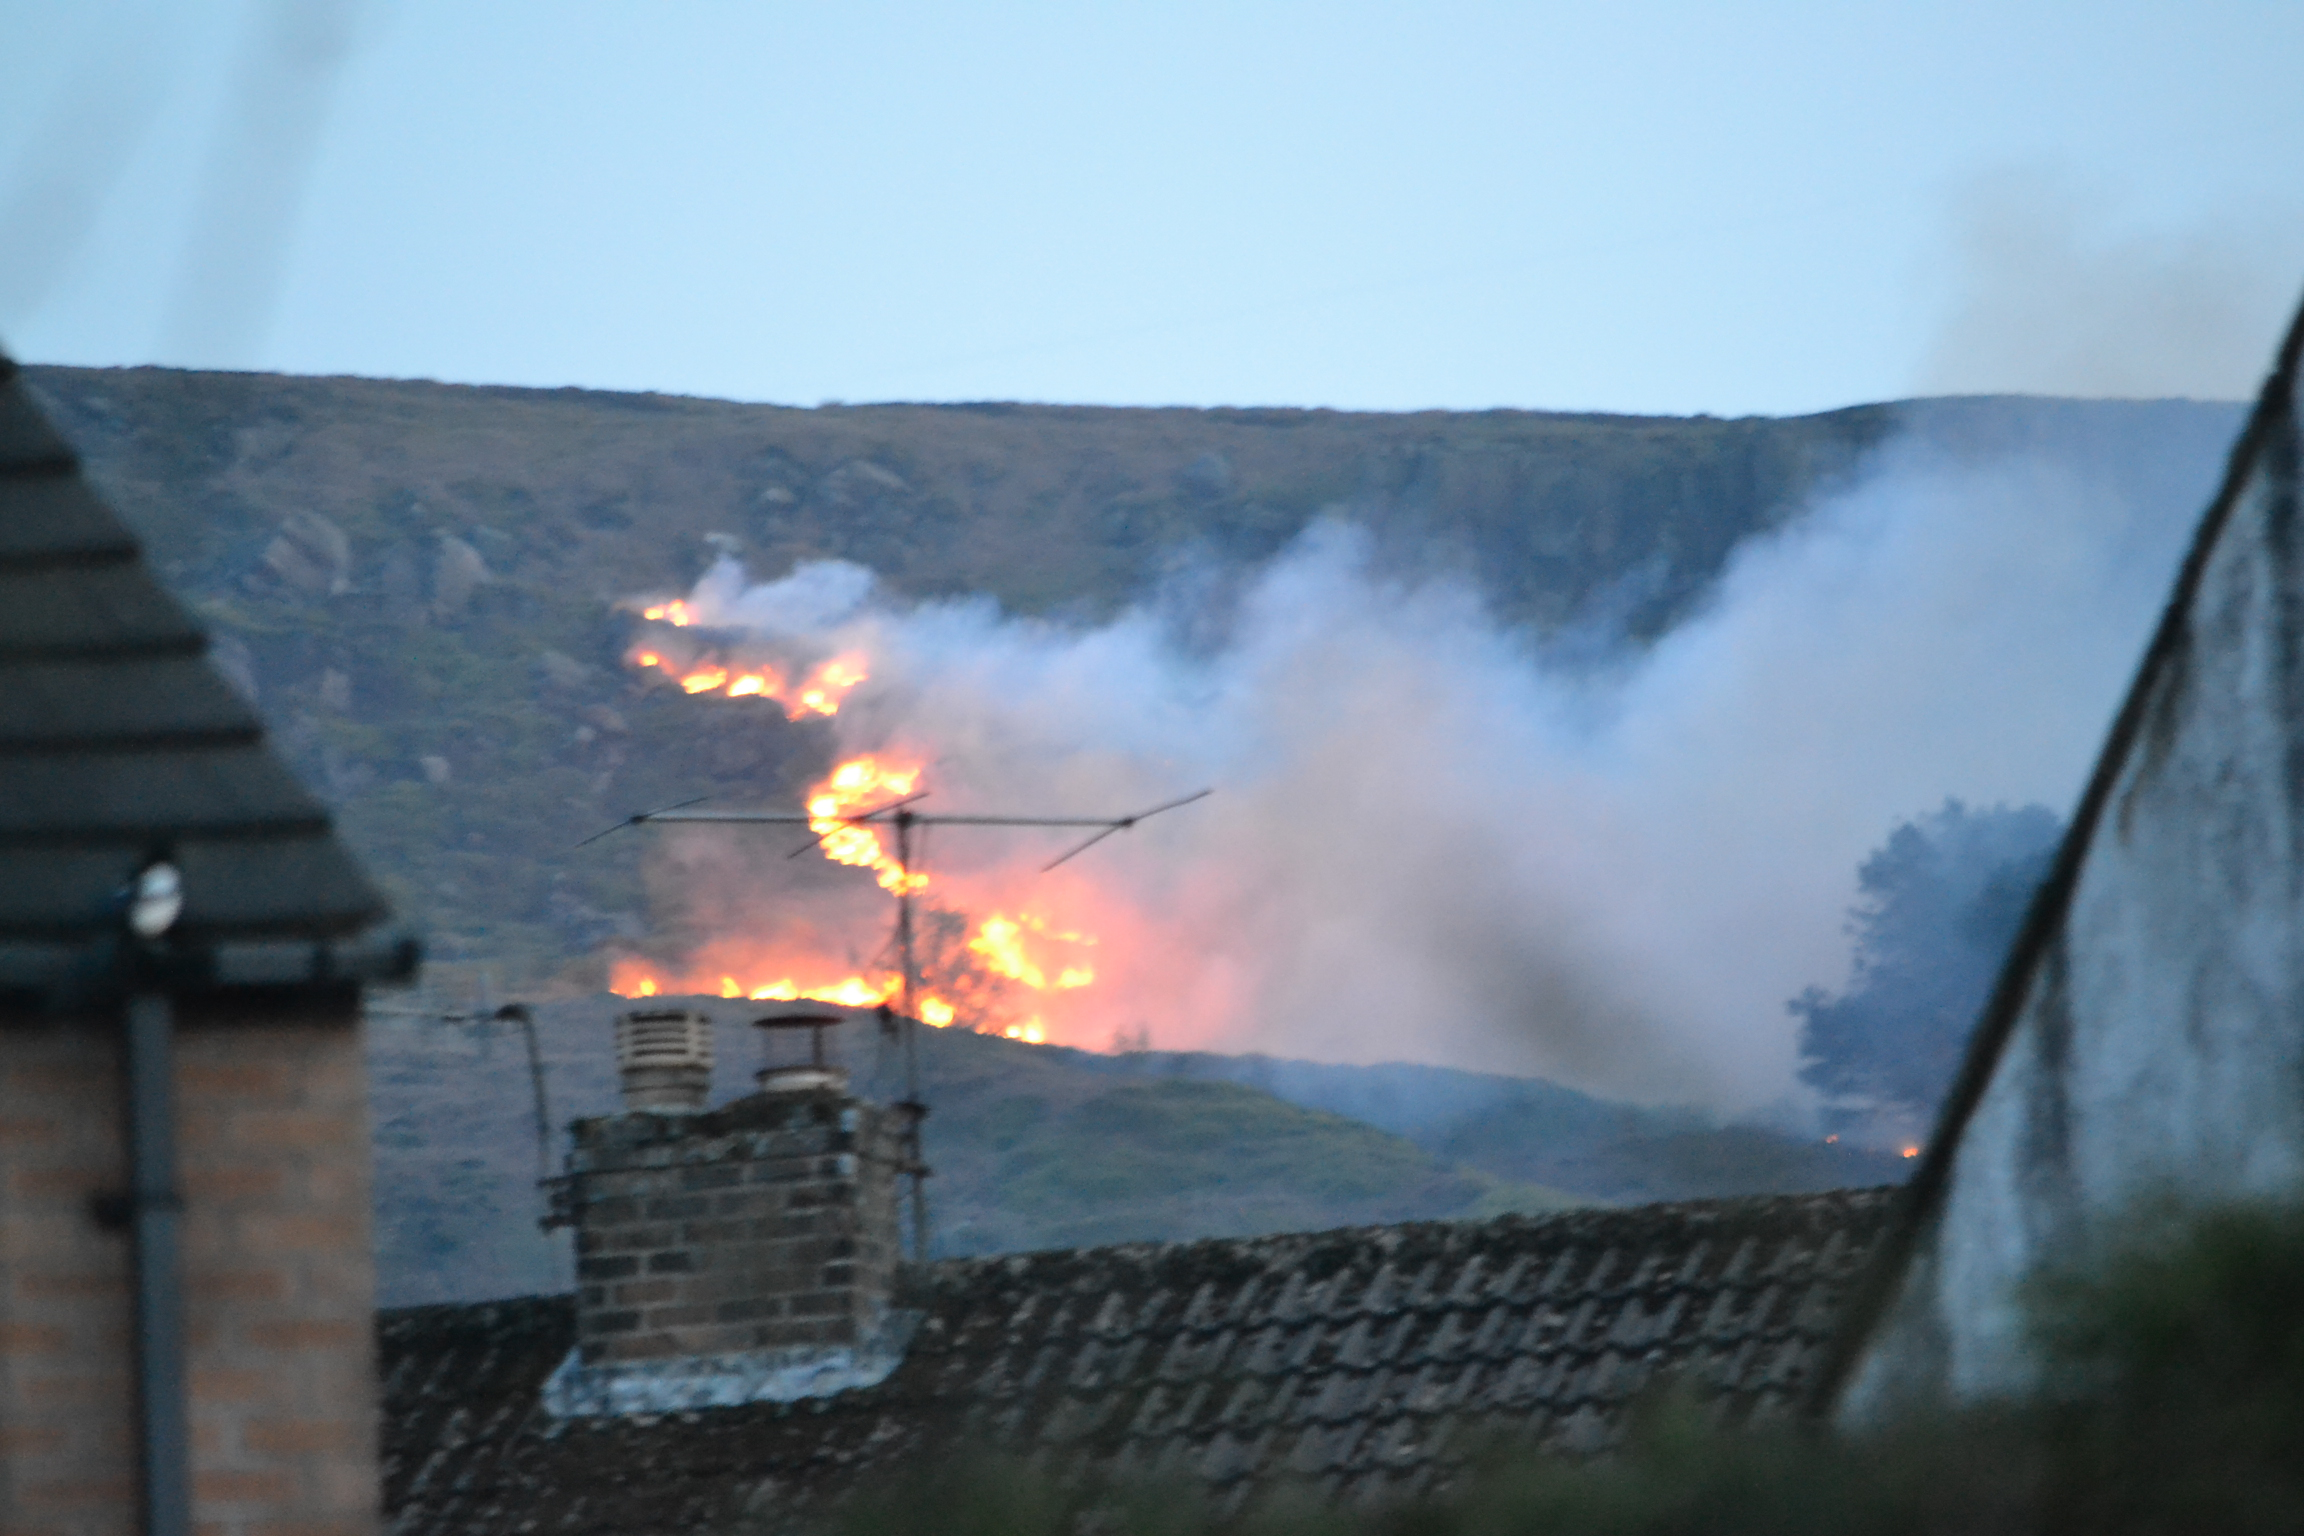 'Dangerous' Ilkley Moor to be cordoned off as 70 firefighters remain at scene